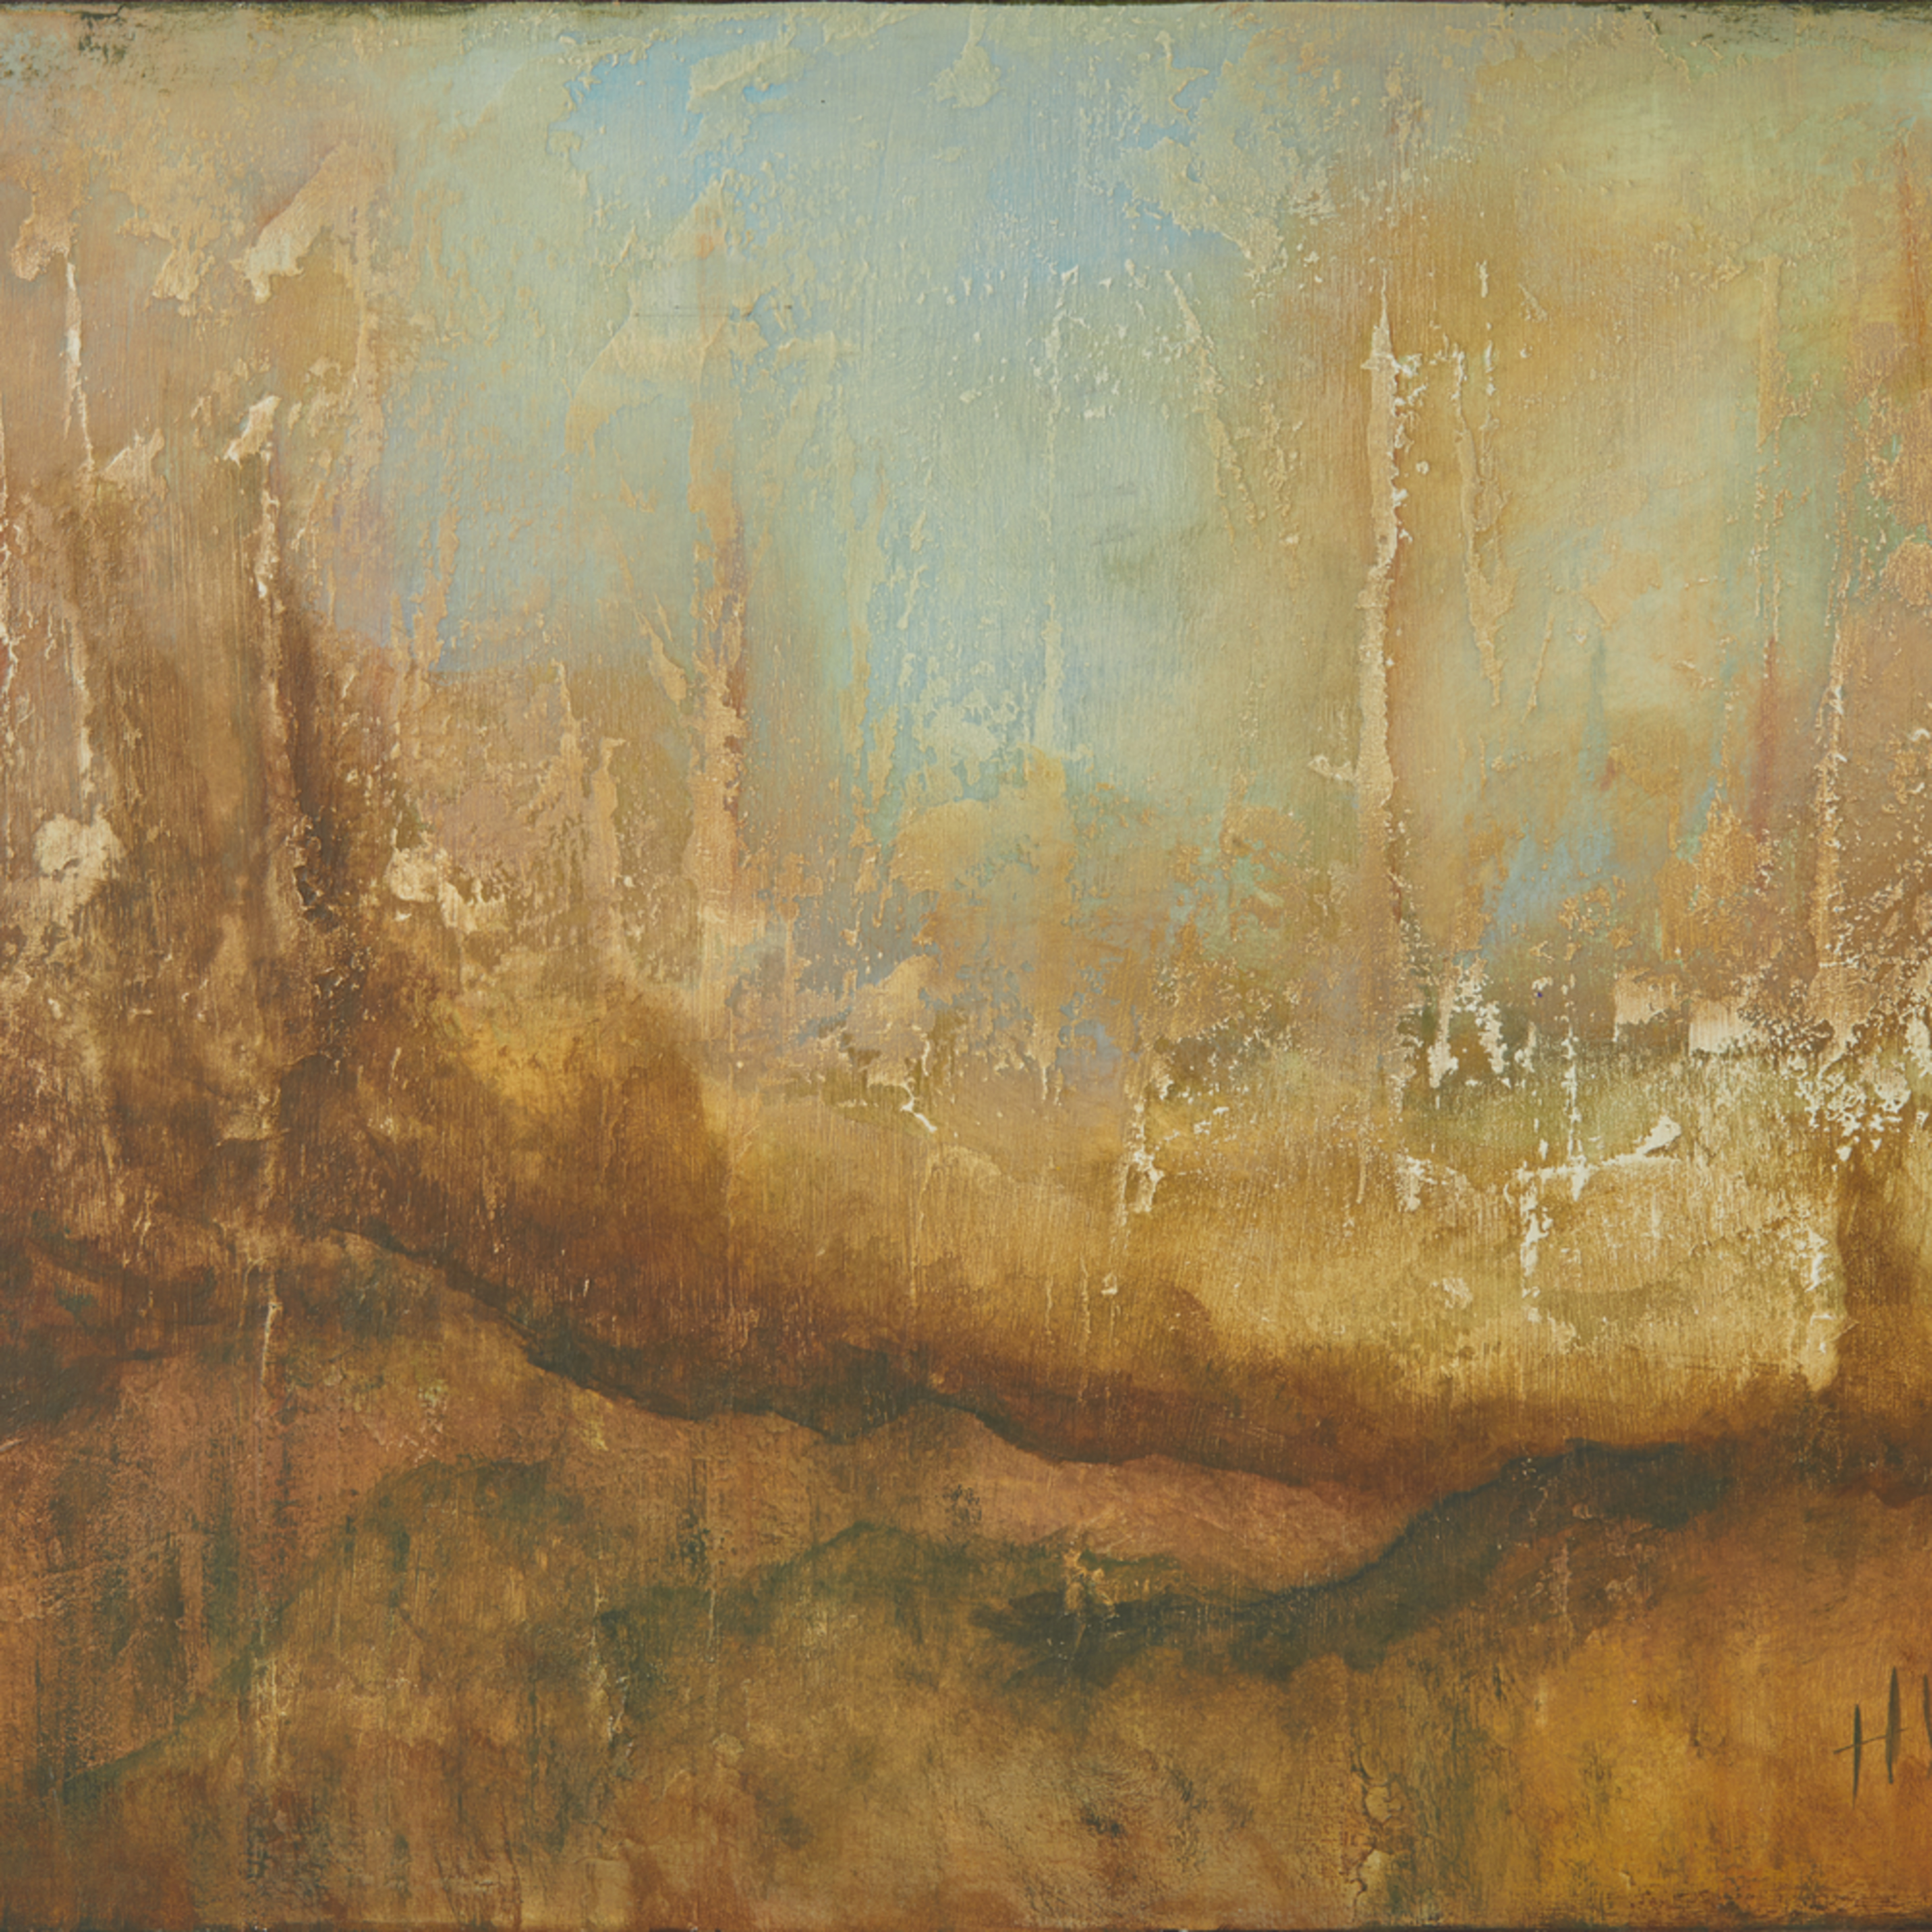 Holly whiting paintings 06 30 17 2297 xl o7cpi4